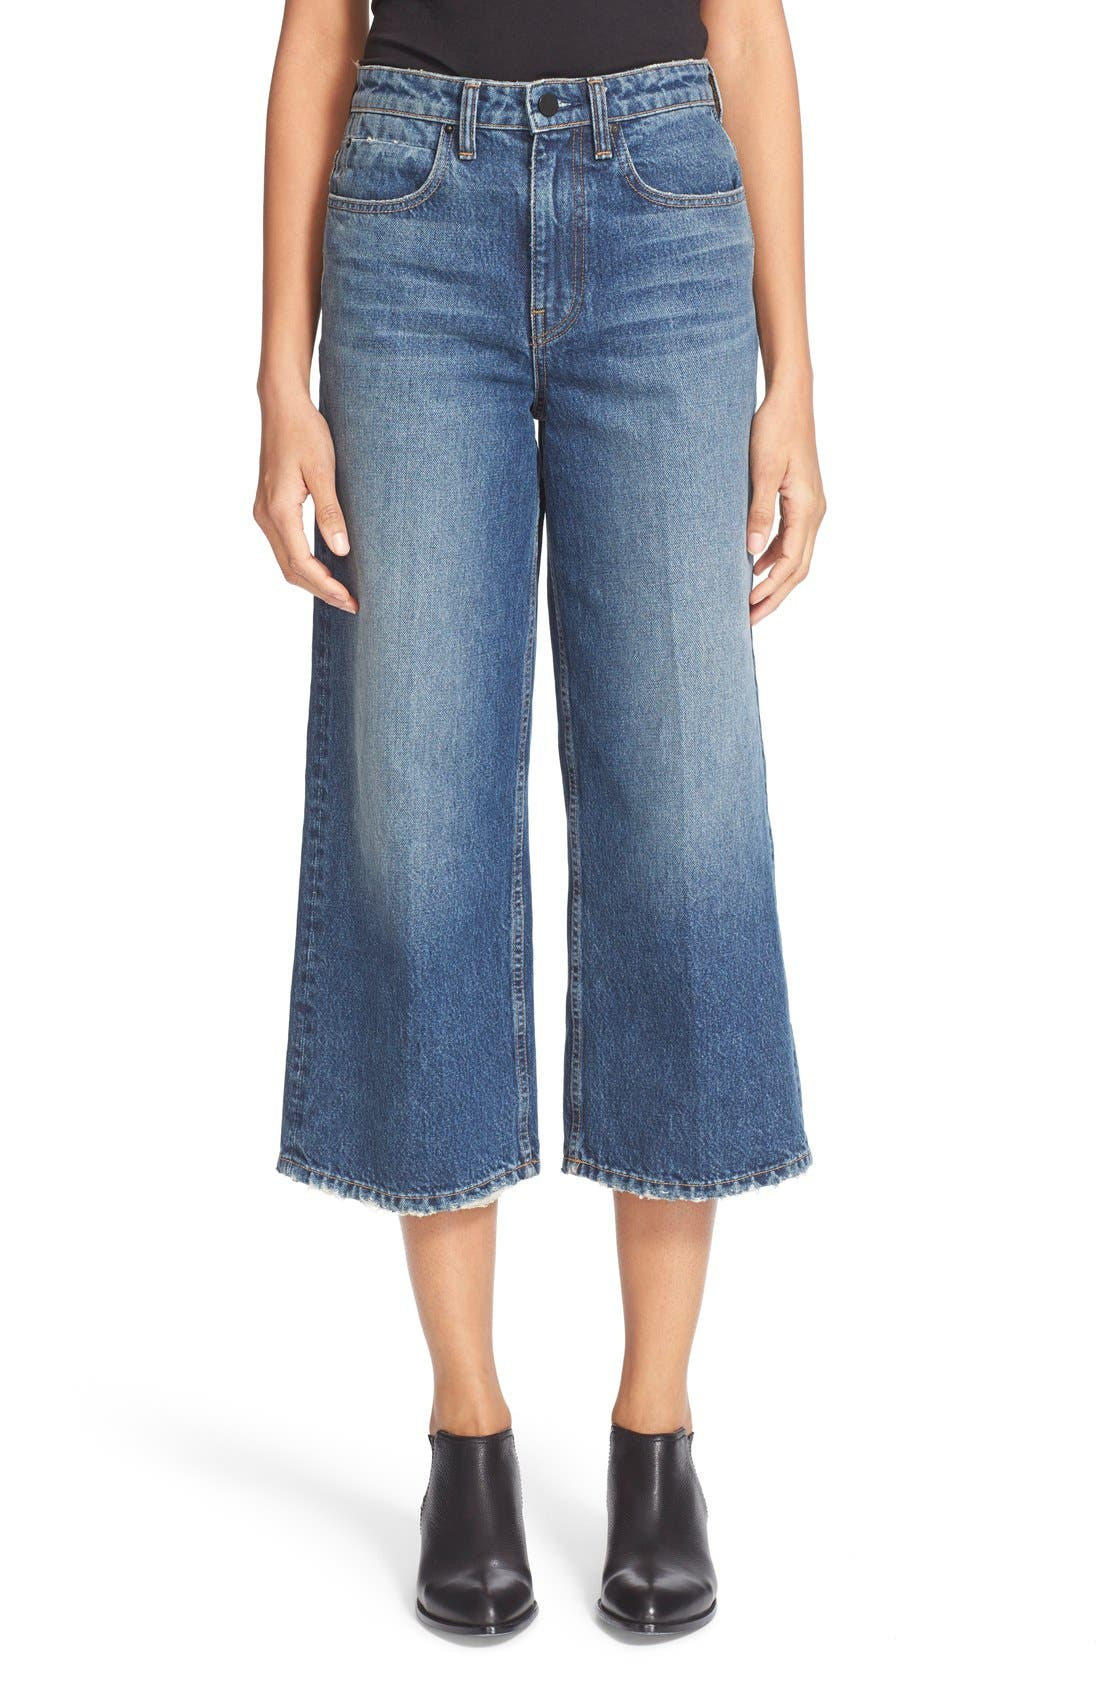 Alternate Image 1 Selected - T by Alexander Wang Drill High Rise Wide Leg Crop Jeans